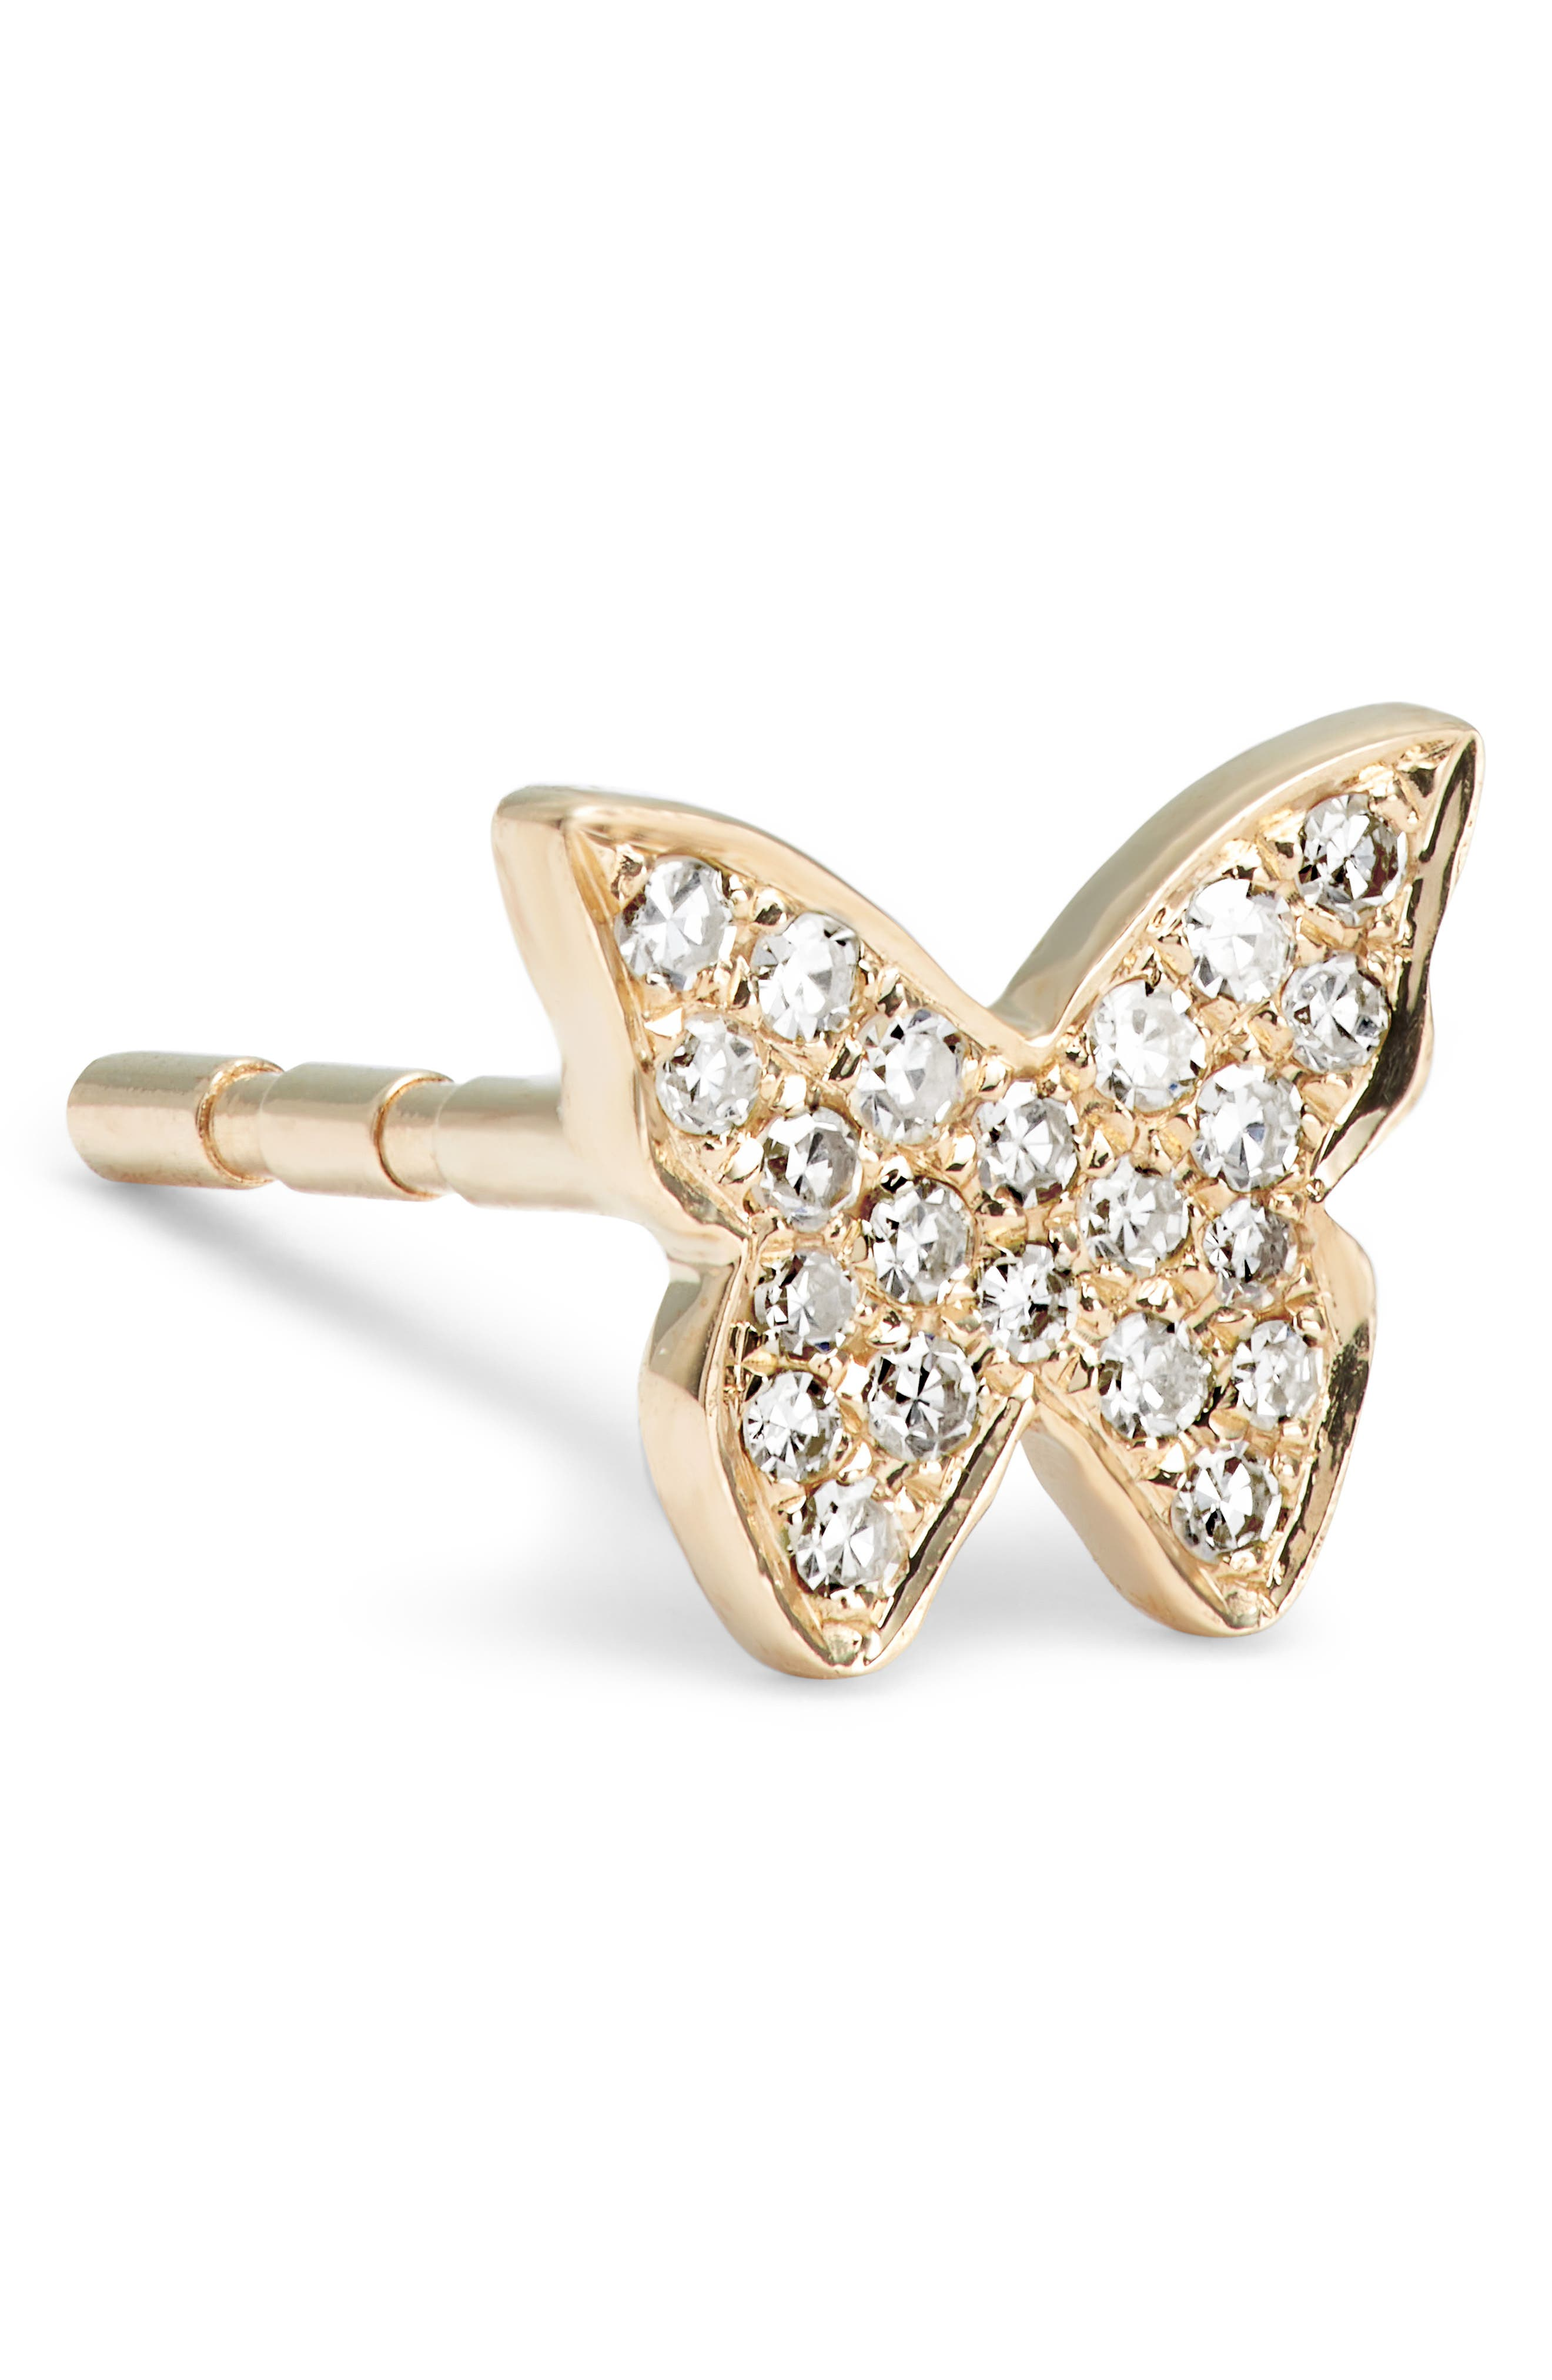 Butterfly Diamond Stud Earrings,                             Alternate thumbnail 5, color,                             YELLOW GOLD